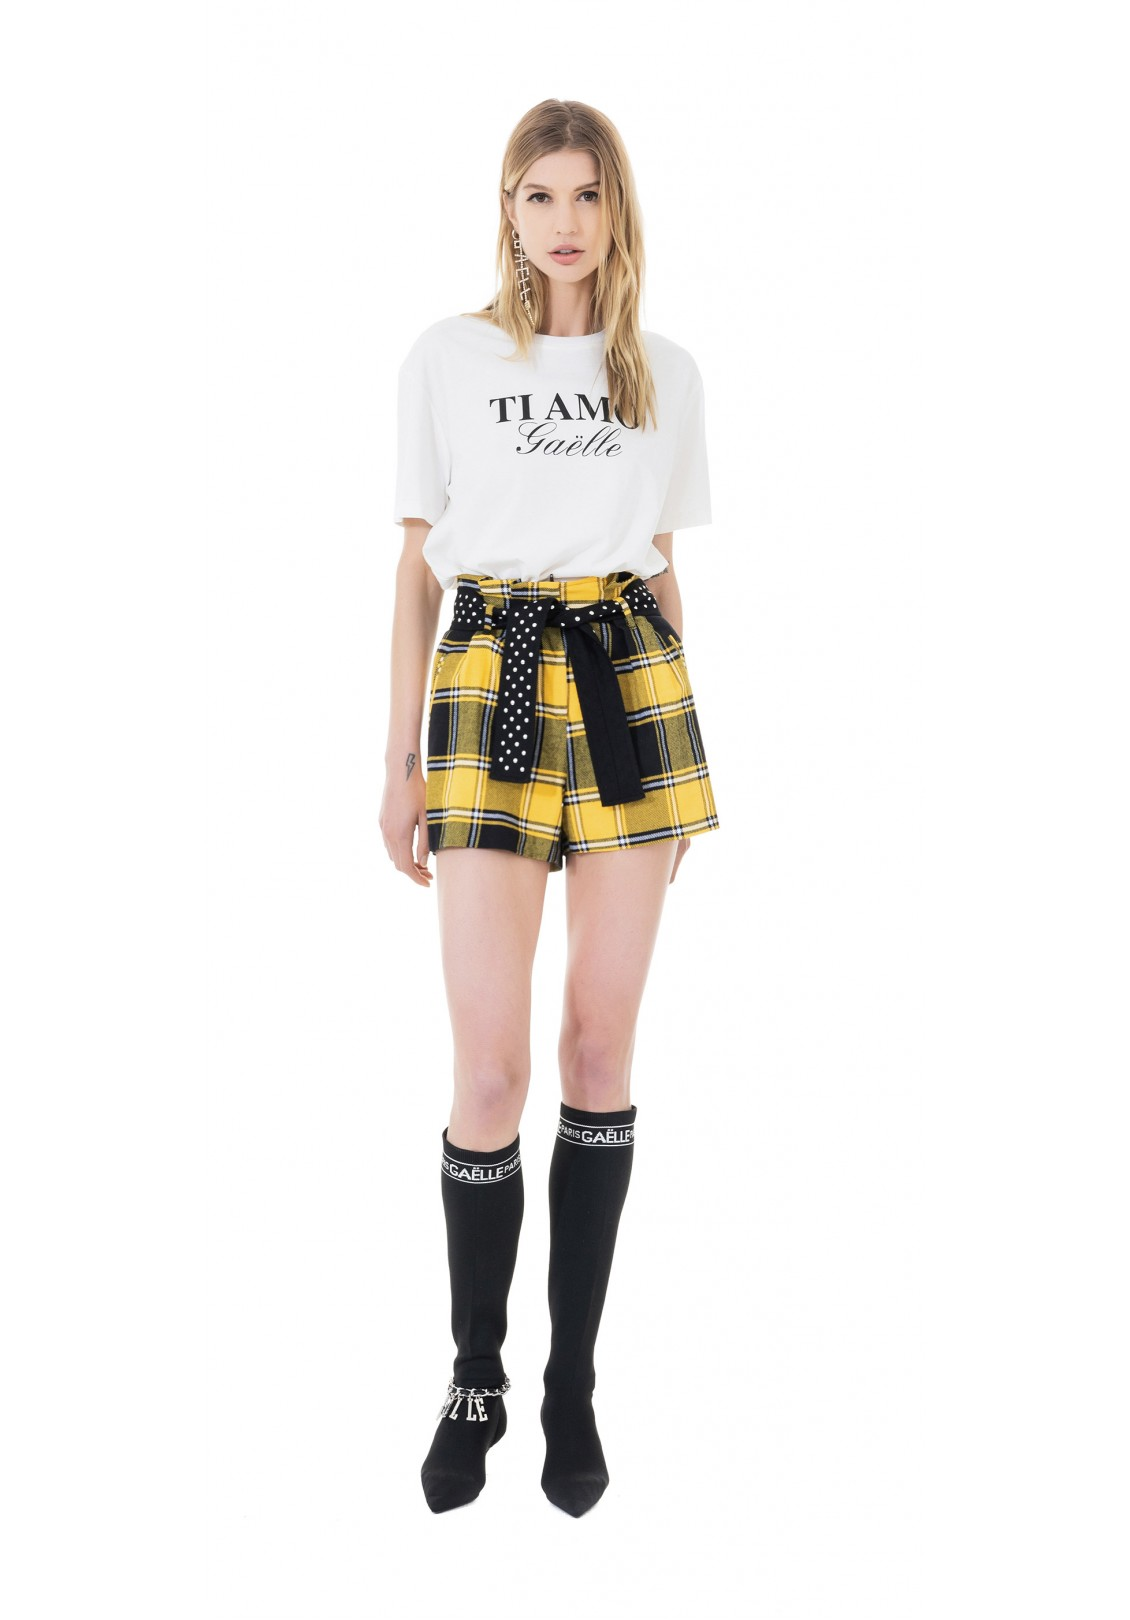 SHORTS - GBD5392 - GAELLE PARIS